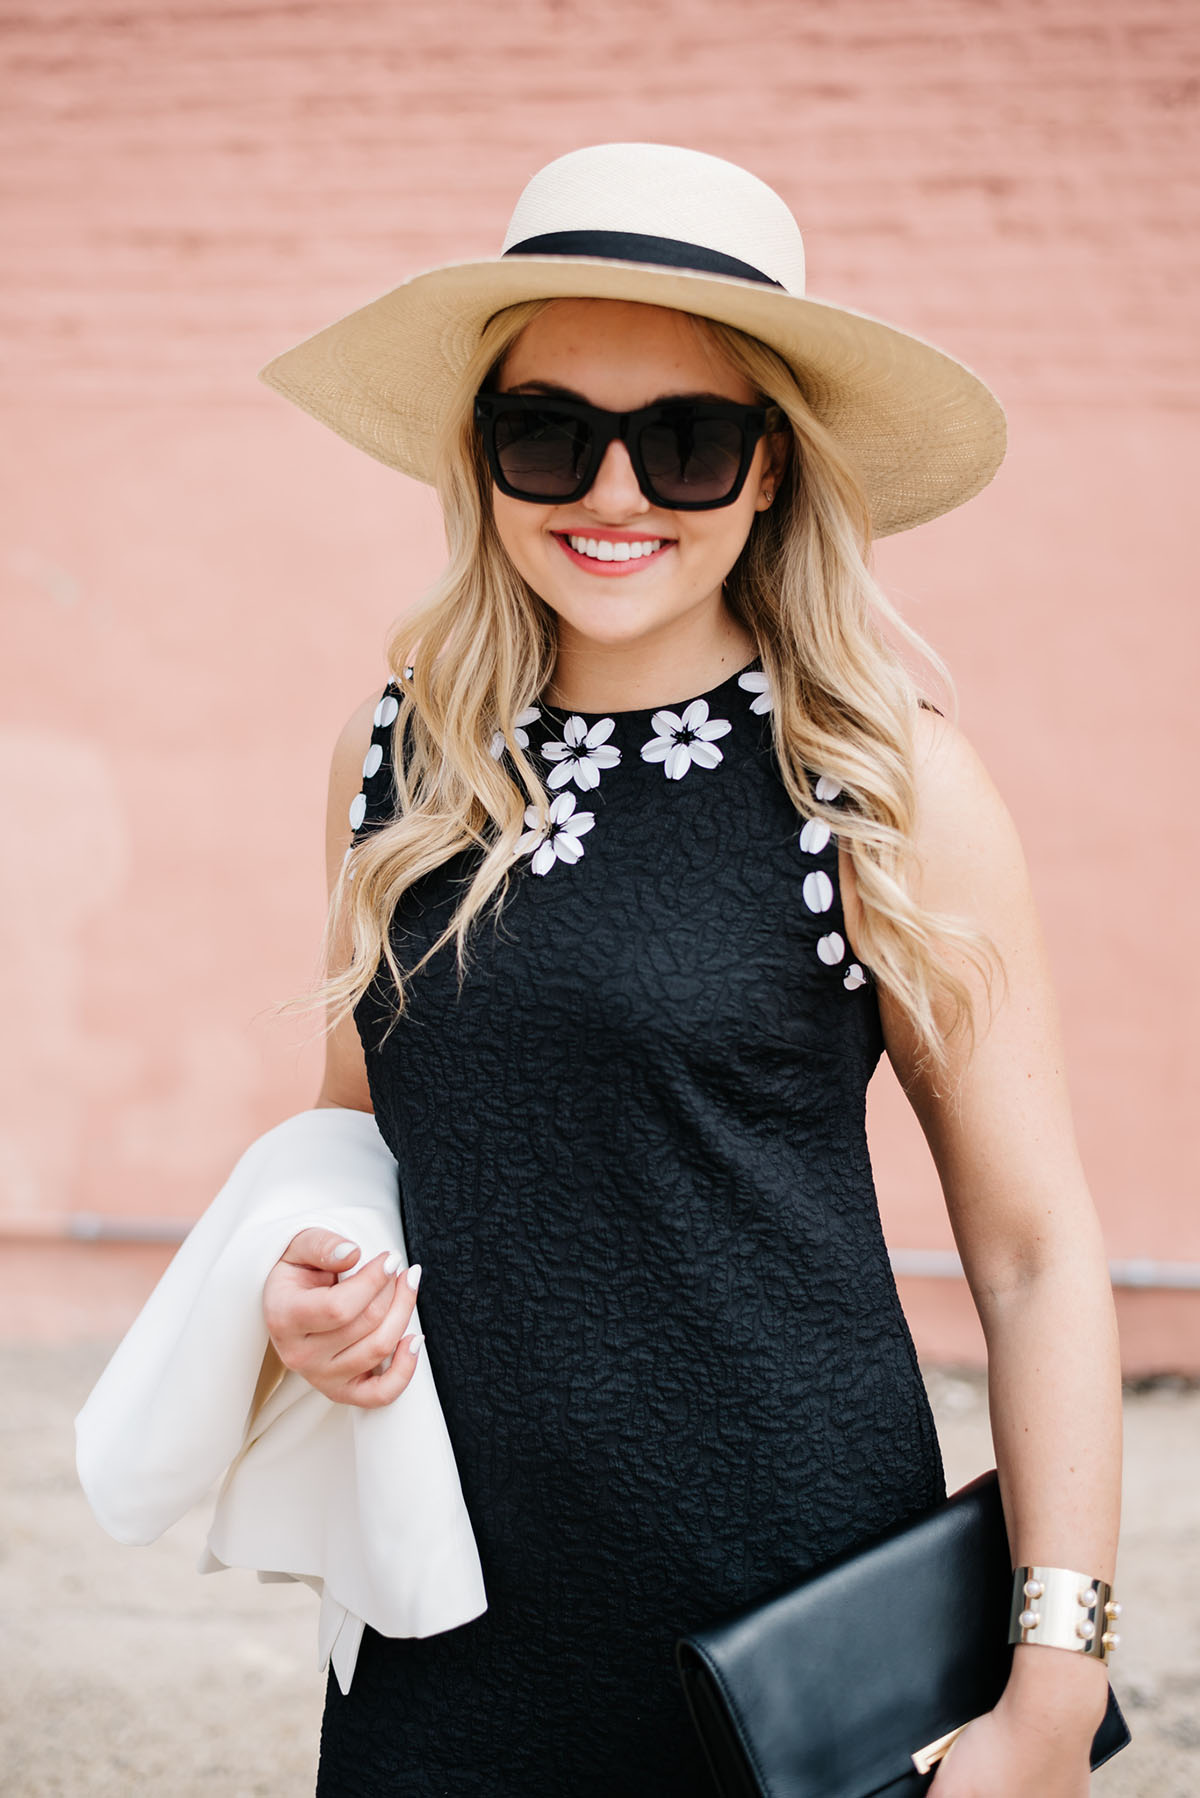 Black Dress With White Flowers White Jacket Summer Straw Hat Wide